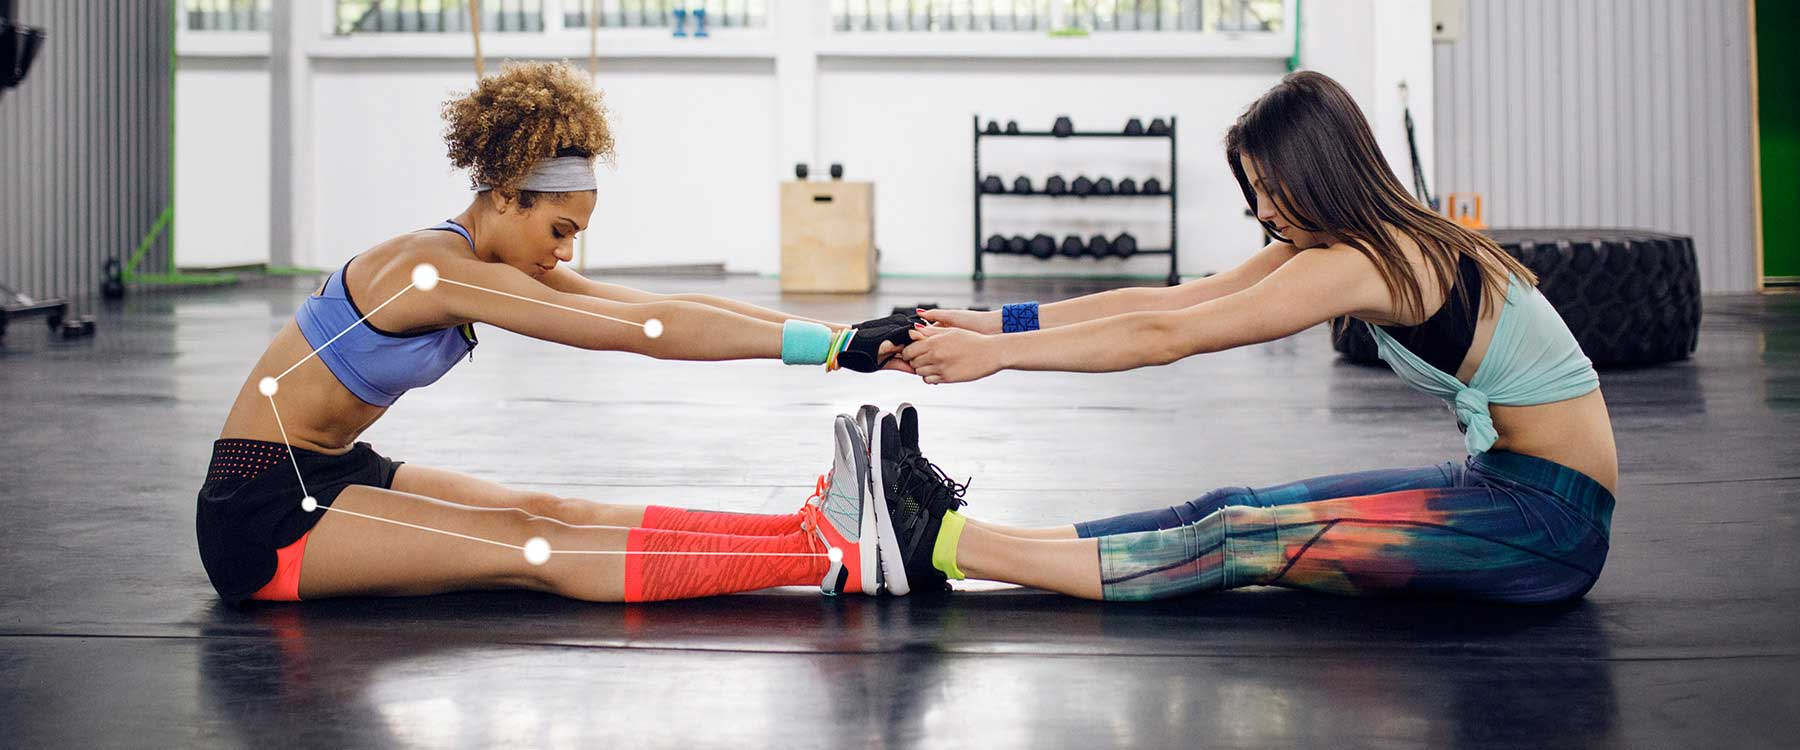 Two women doing exercise